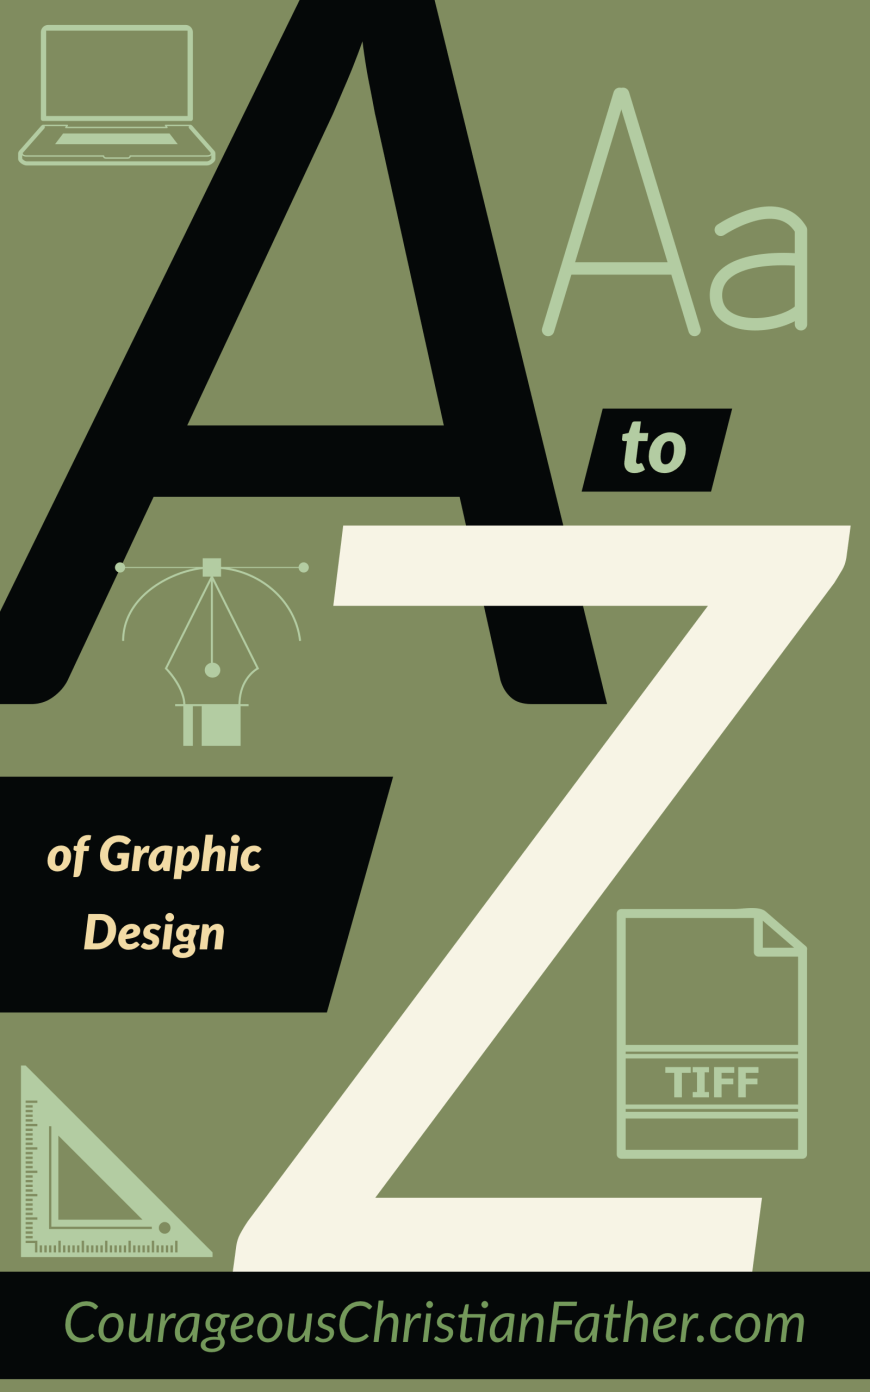 The A-Z of Graphic Design - This is a list of Graphic Design terms using each letter of the alphabet form A-Z. #GraphicDesign